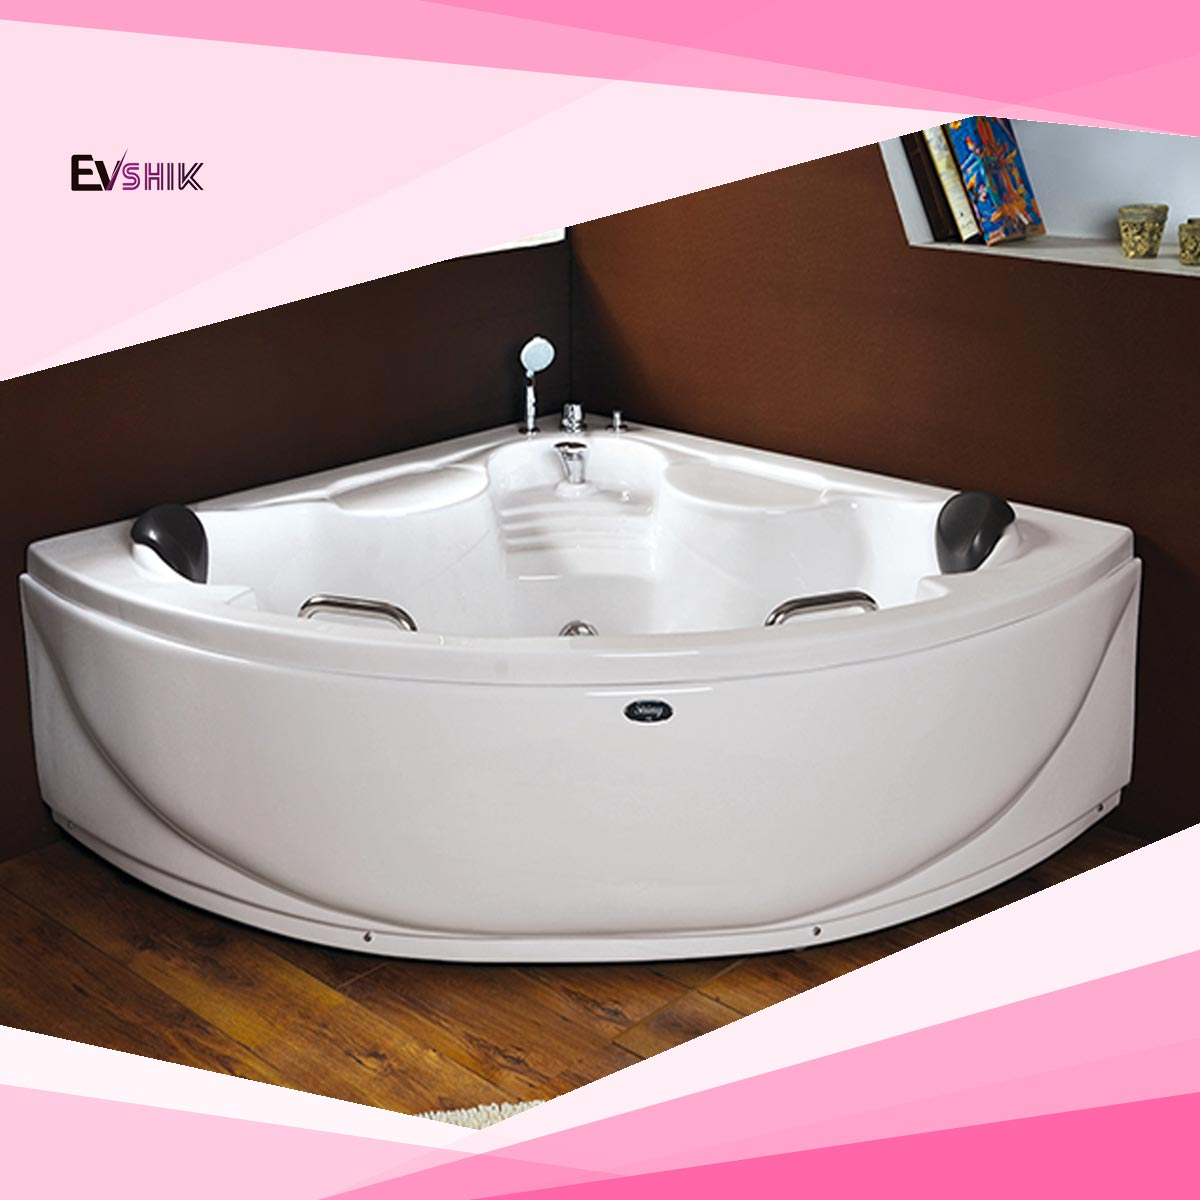 best  shiny n-ja014 Jacuzzi tubs-air tubs-soaking tubs and whirlpool baths for sale- Largest selection and lowest price for two